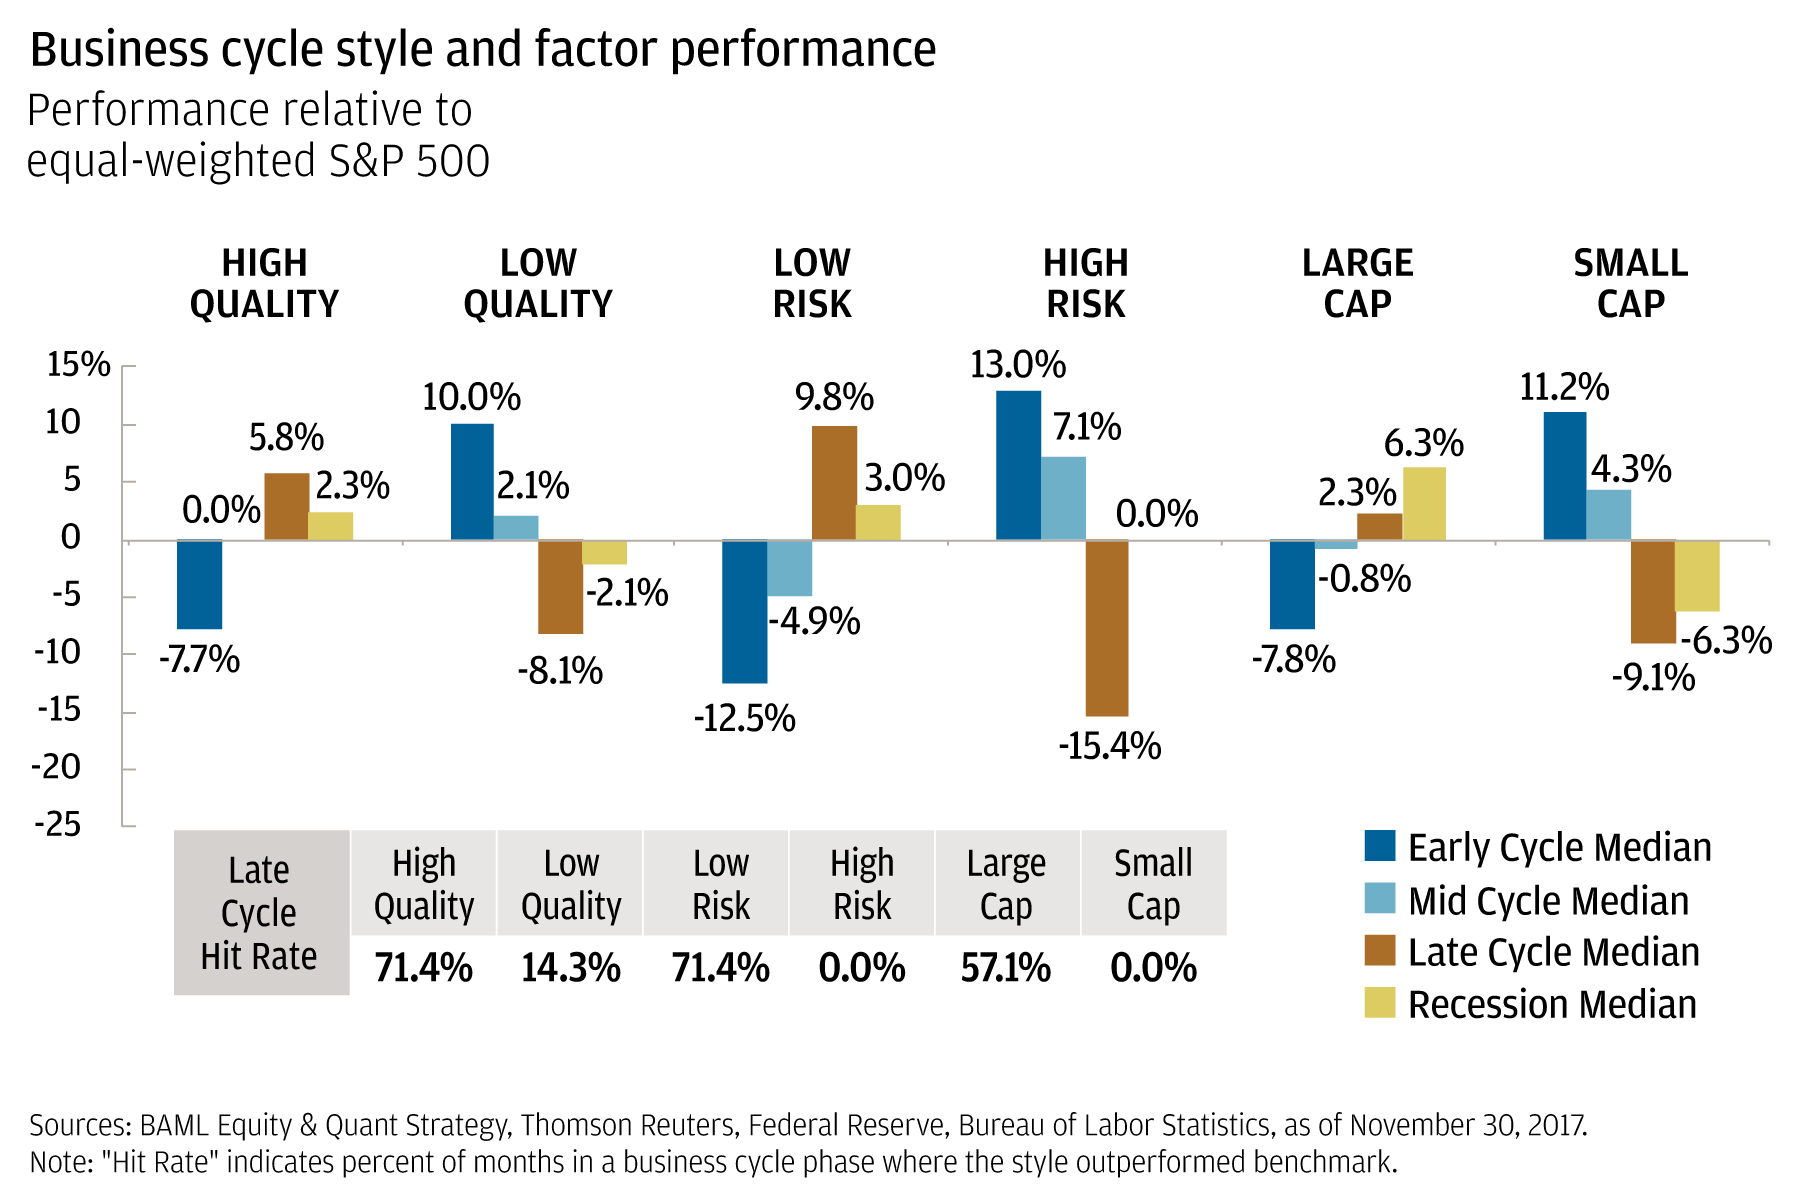 Bar chart compares the performance relative to equal-weighted S&P 500 across various business cycles (early-cycle, mid-cycle, late-cycle and recession) and factors (high-quality, low-quality, low-risk, high-risk, large-cap and small-cap). The chart highlights that in late-cycle, the factors that perform best are high-quality, low-risk and large-cap.